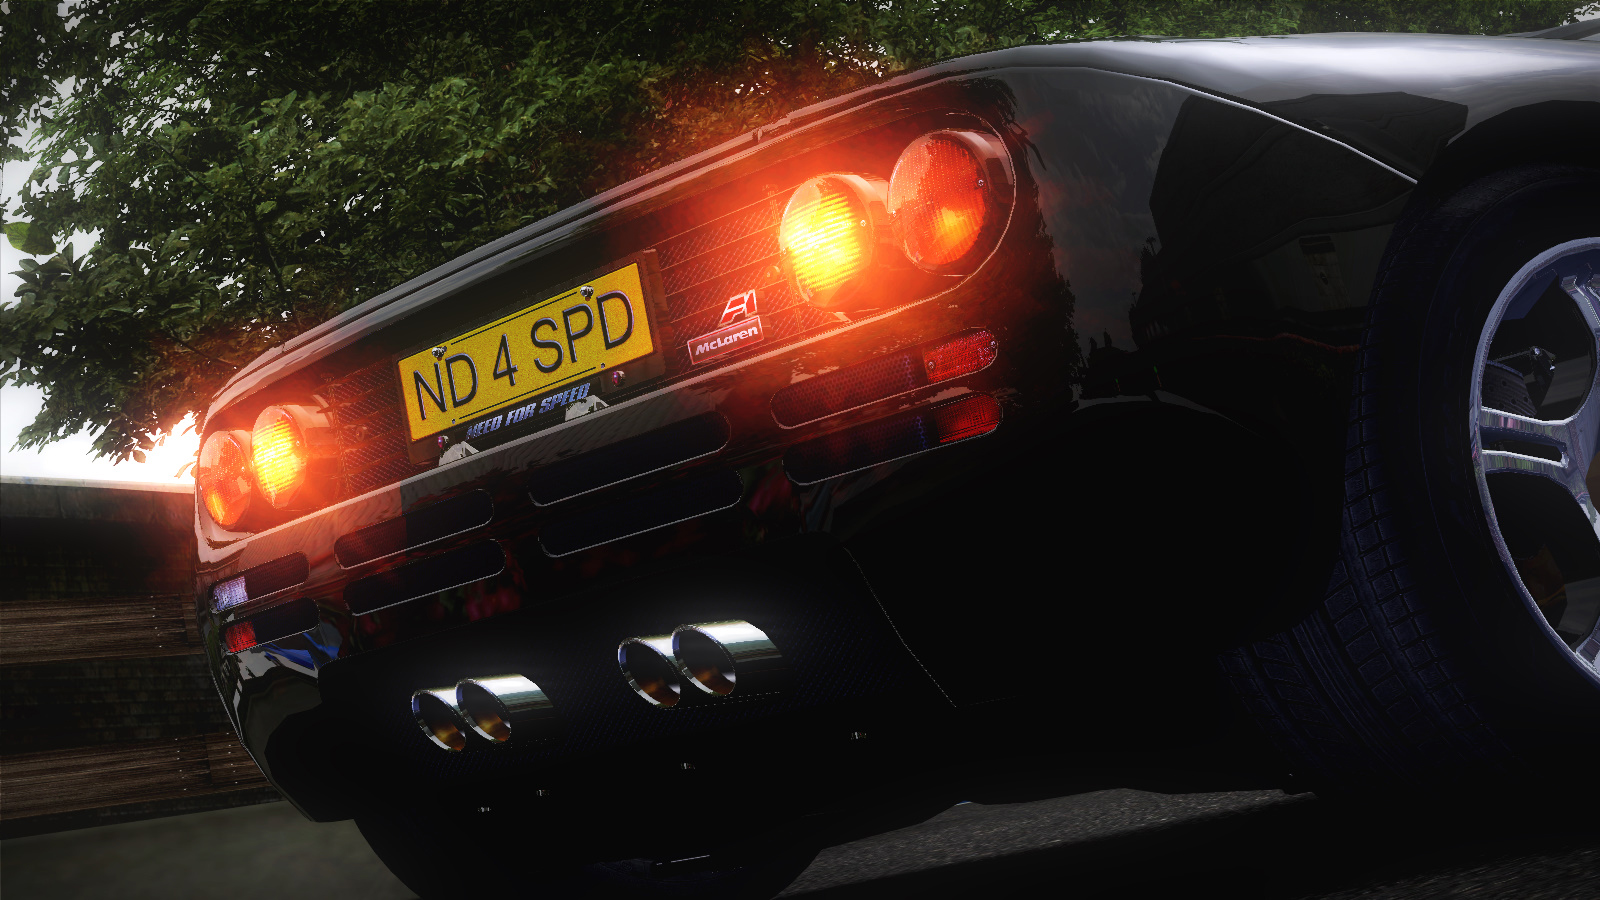 McLaren F1 NFS2 Edition by Alex.Ka. - Need for Speed: Most Wanted (2005) mclaren f1, Автомобиль